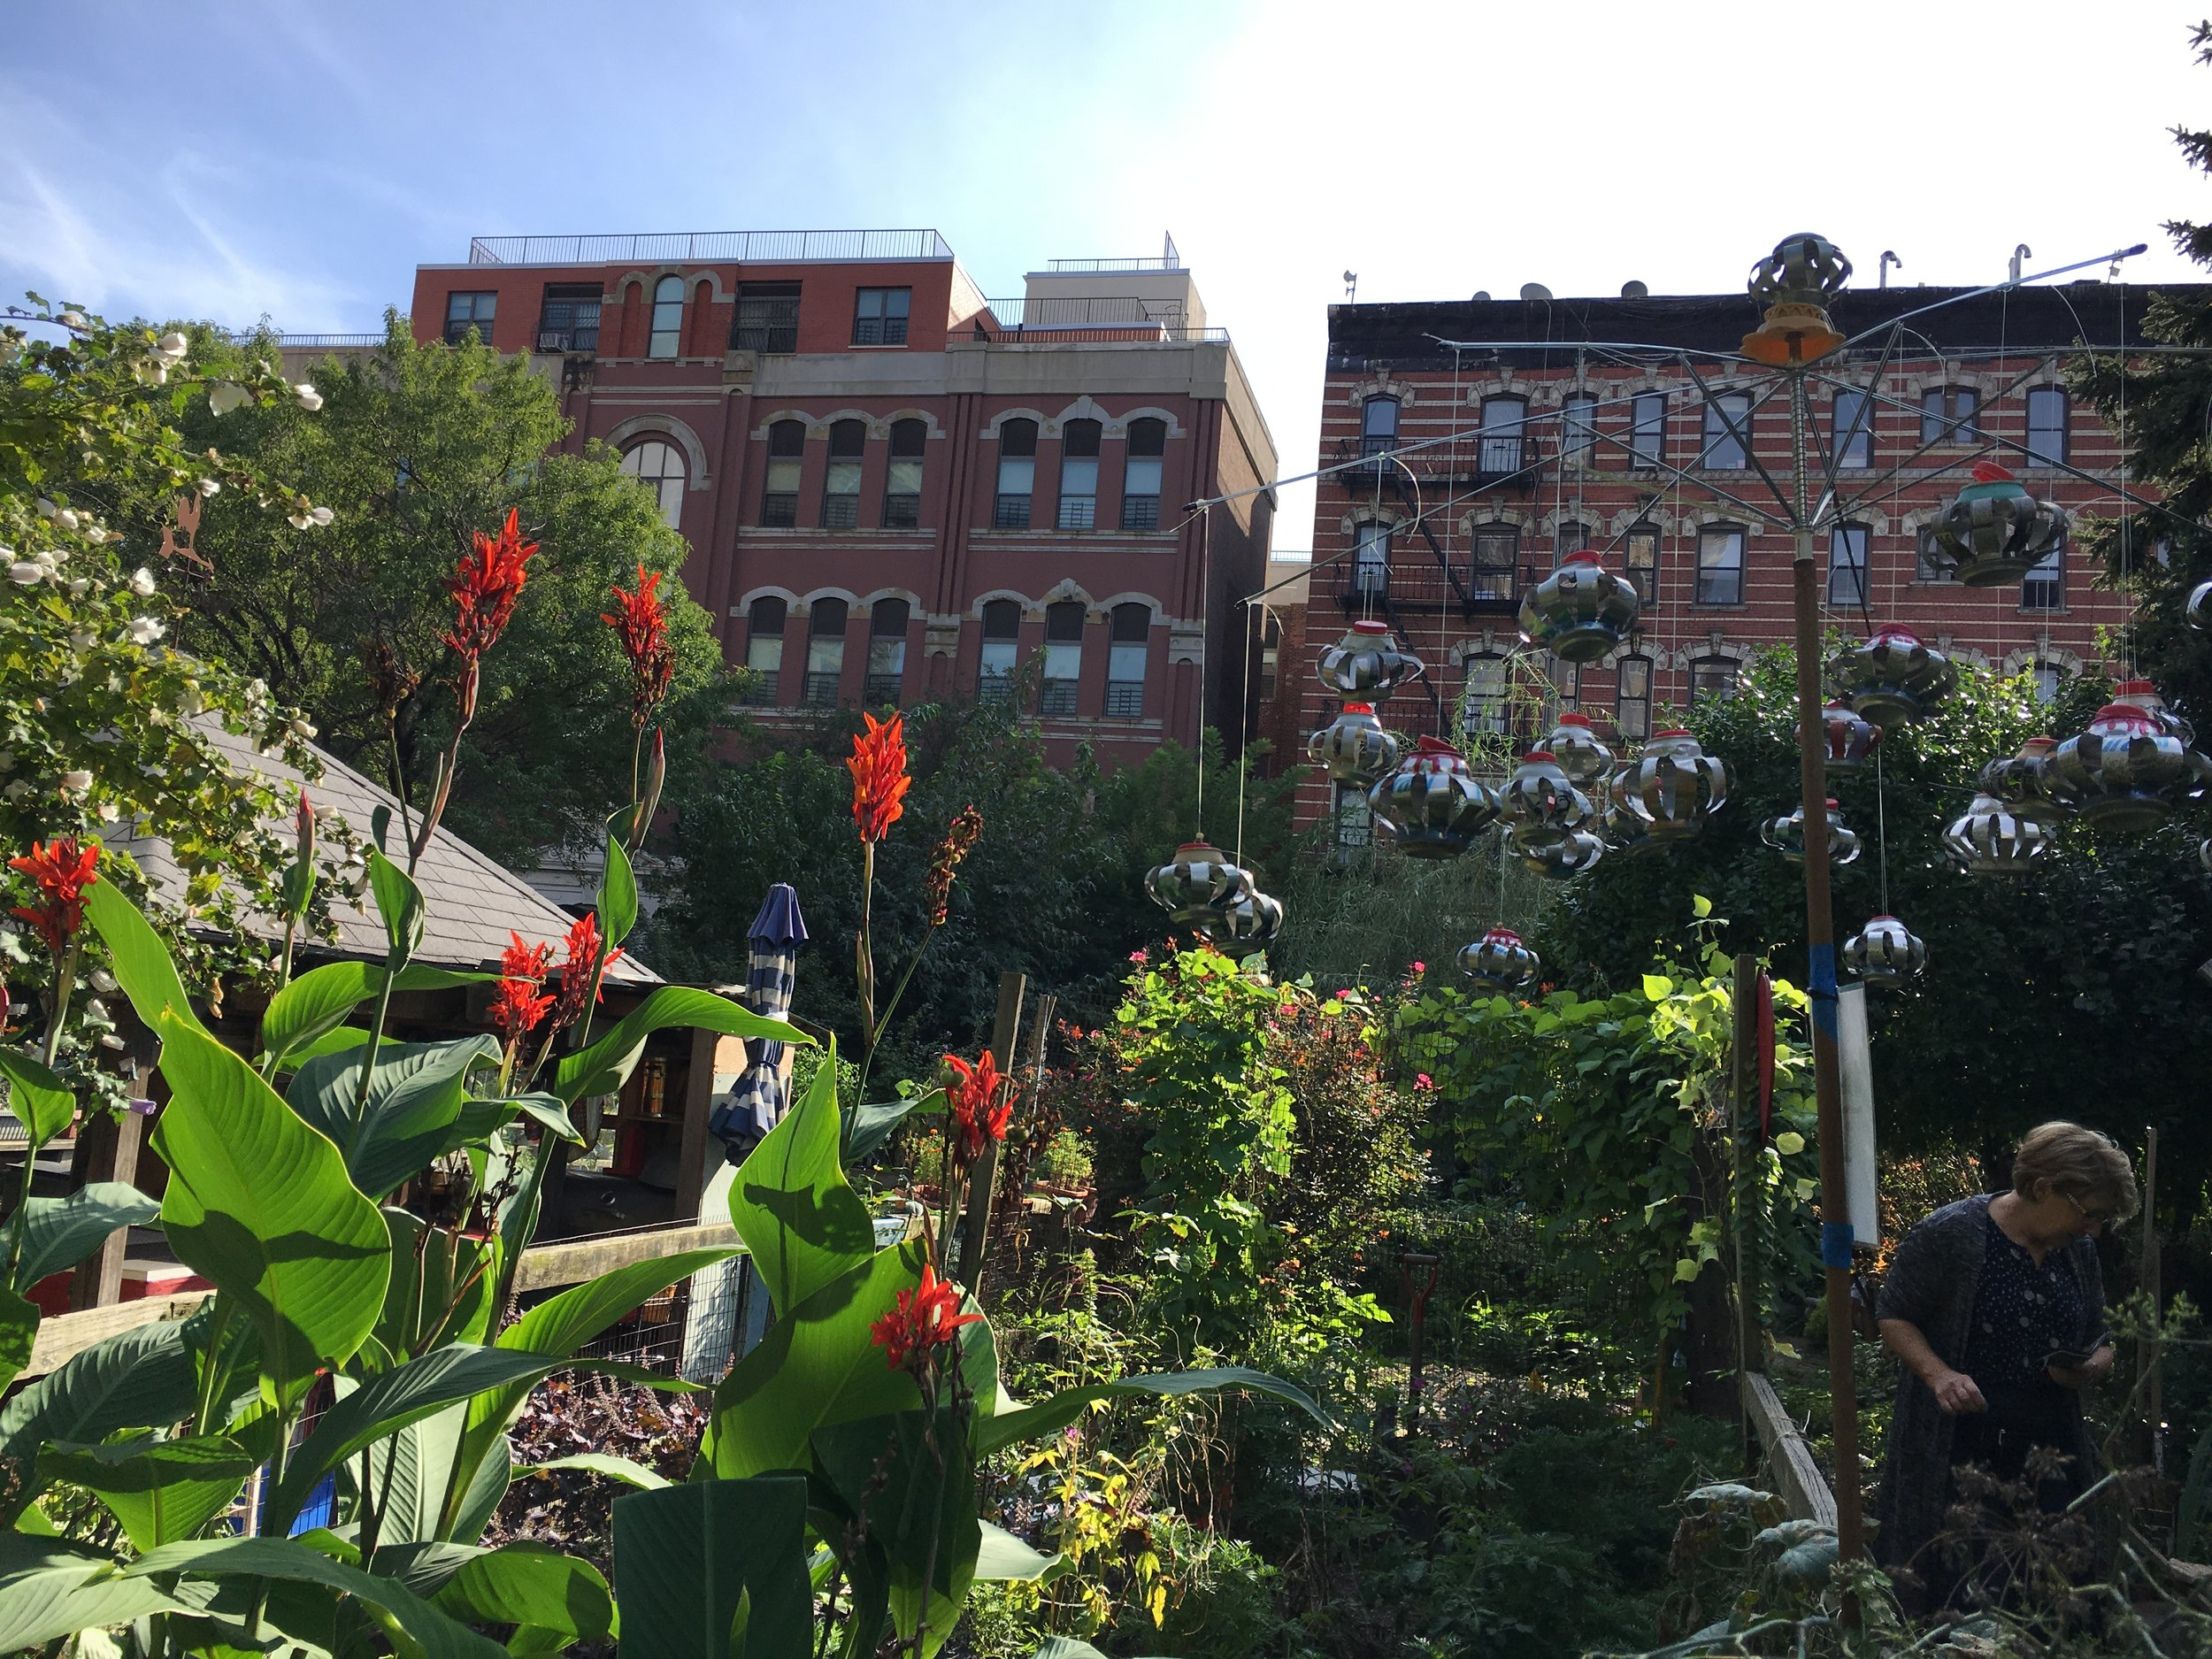 CommunityGardensNYC_2018-10-04.JPG